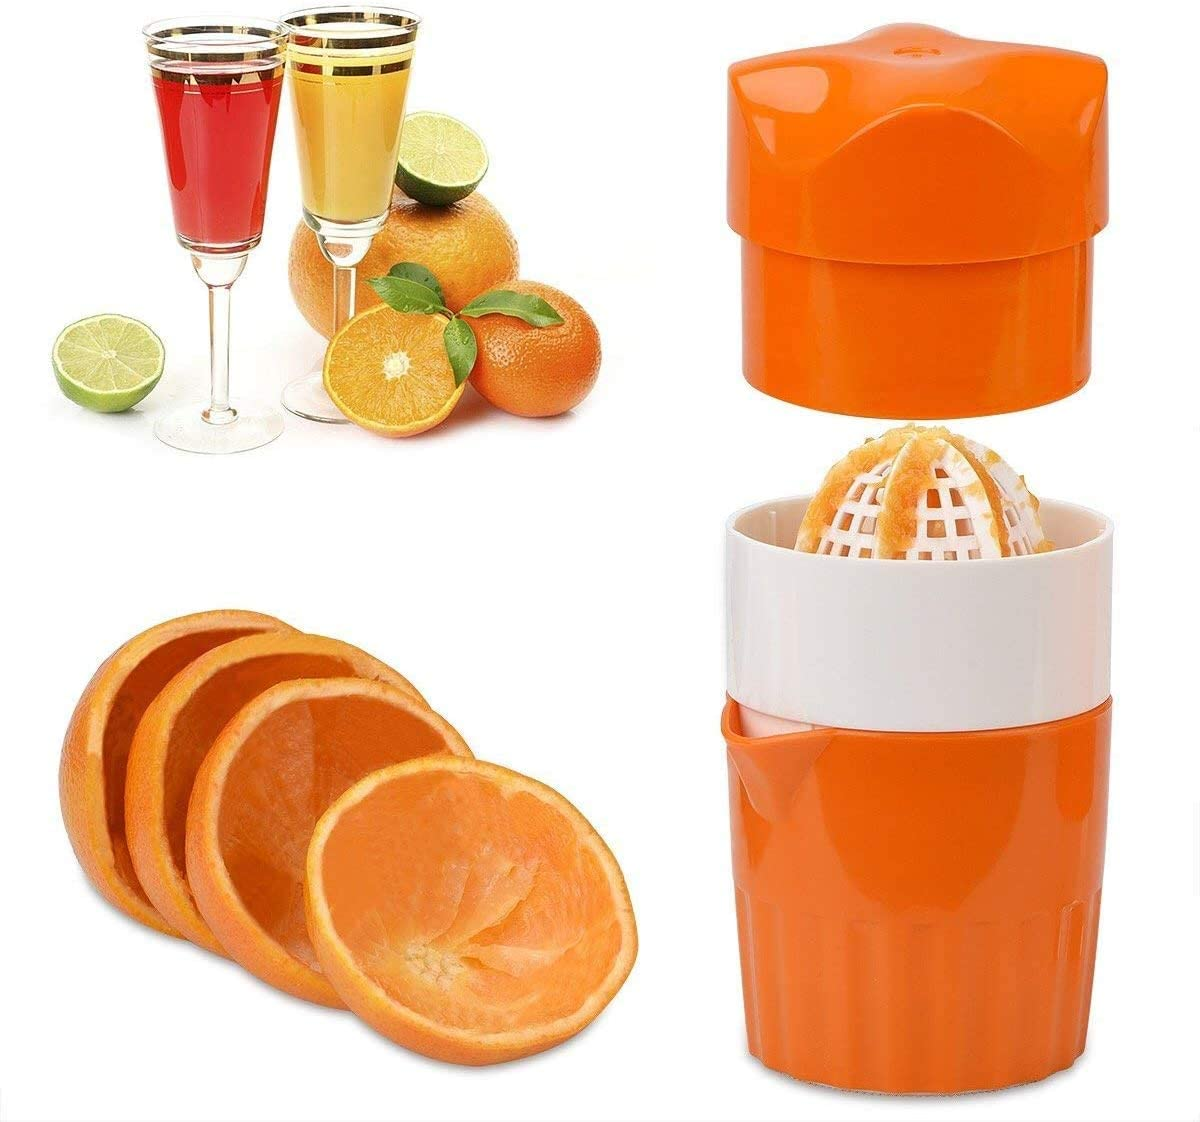 Juicer Citrus Orange Squeezer,Manual Lid Rotation Press Reamer for Lemon Lime Grapefruit